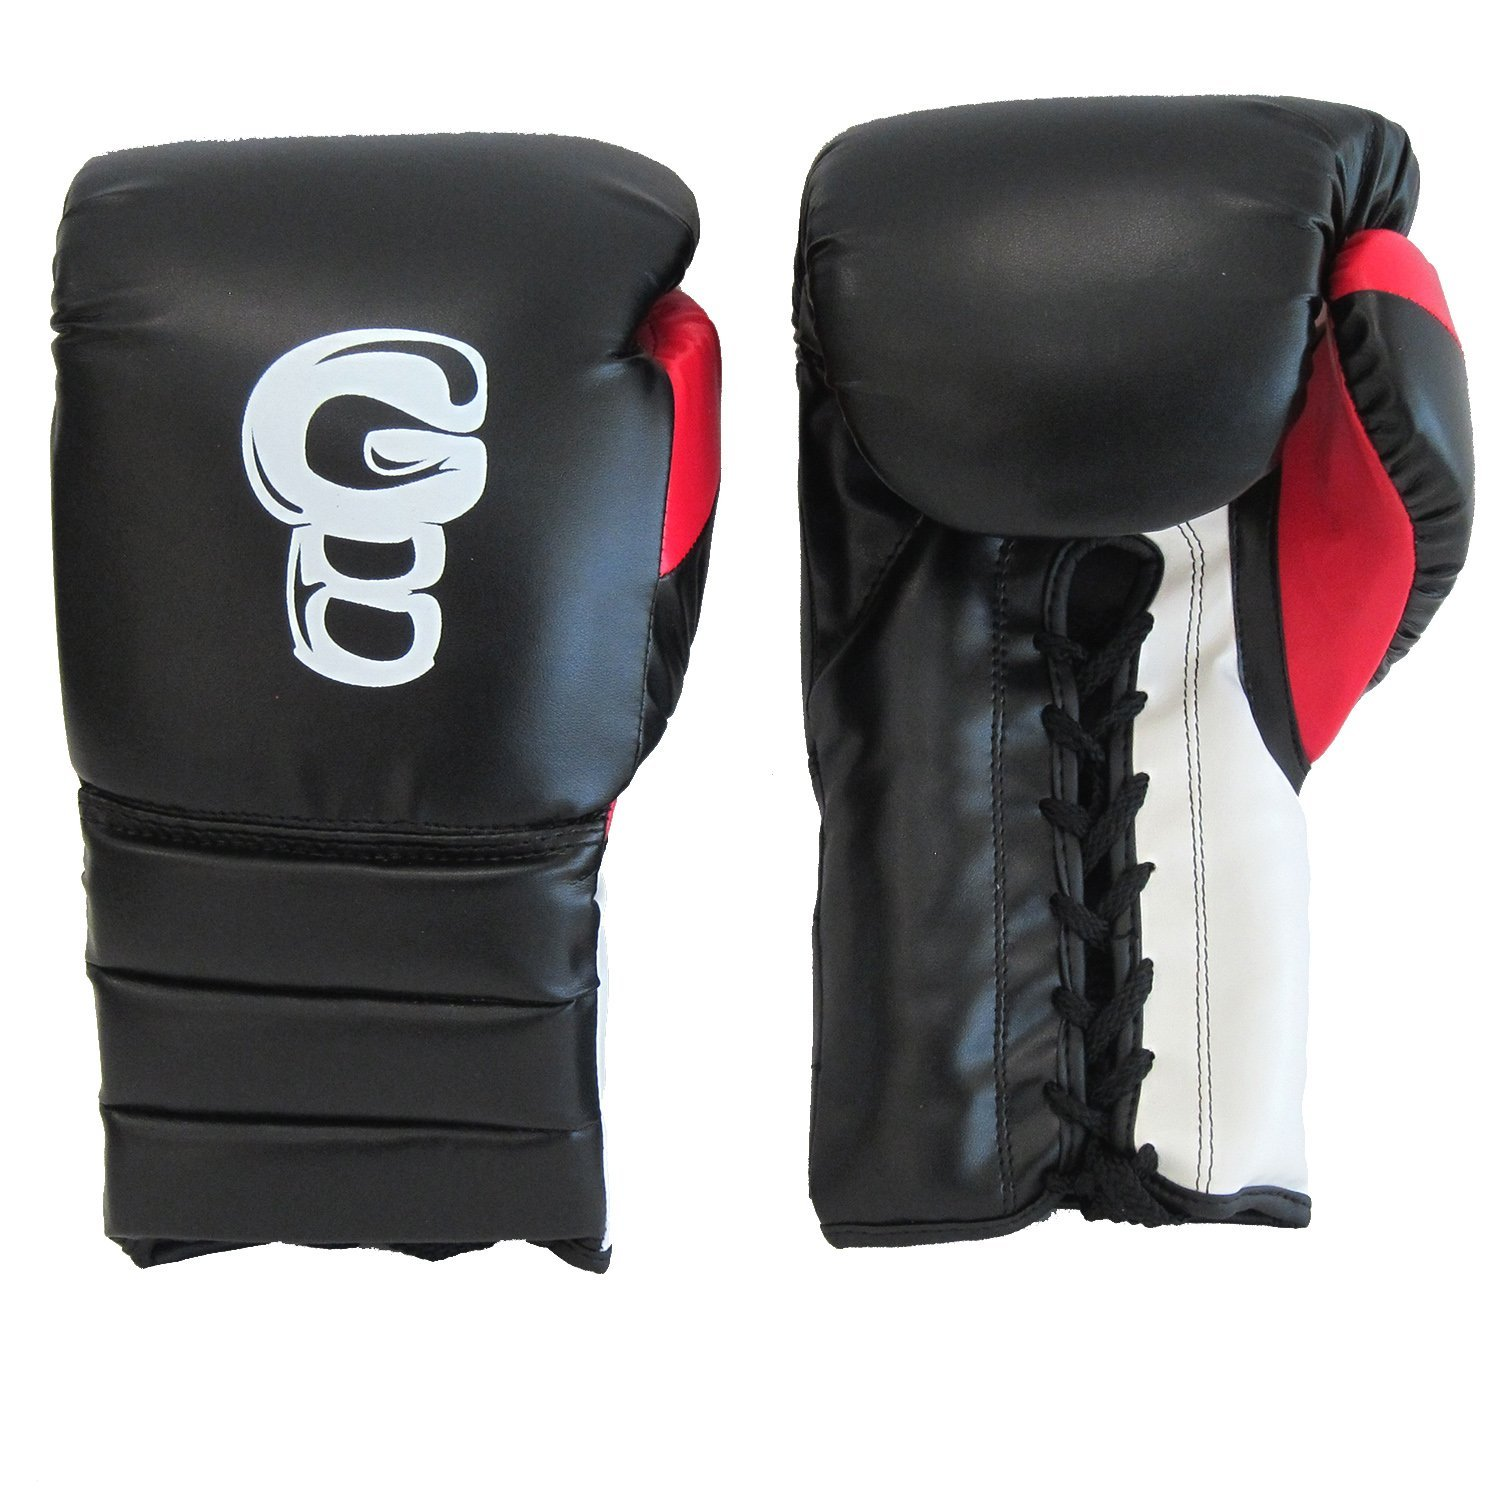 GRANT BOXING PROFESSIONAL LEATHER SPARRING GLOVES WITH GERMAN SAS-TEC TECHNOLOGY FOR THE BEST HAND PROTECTION EVER